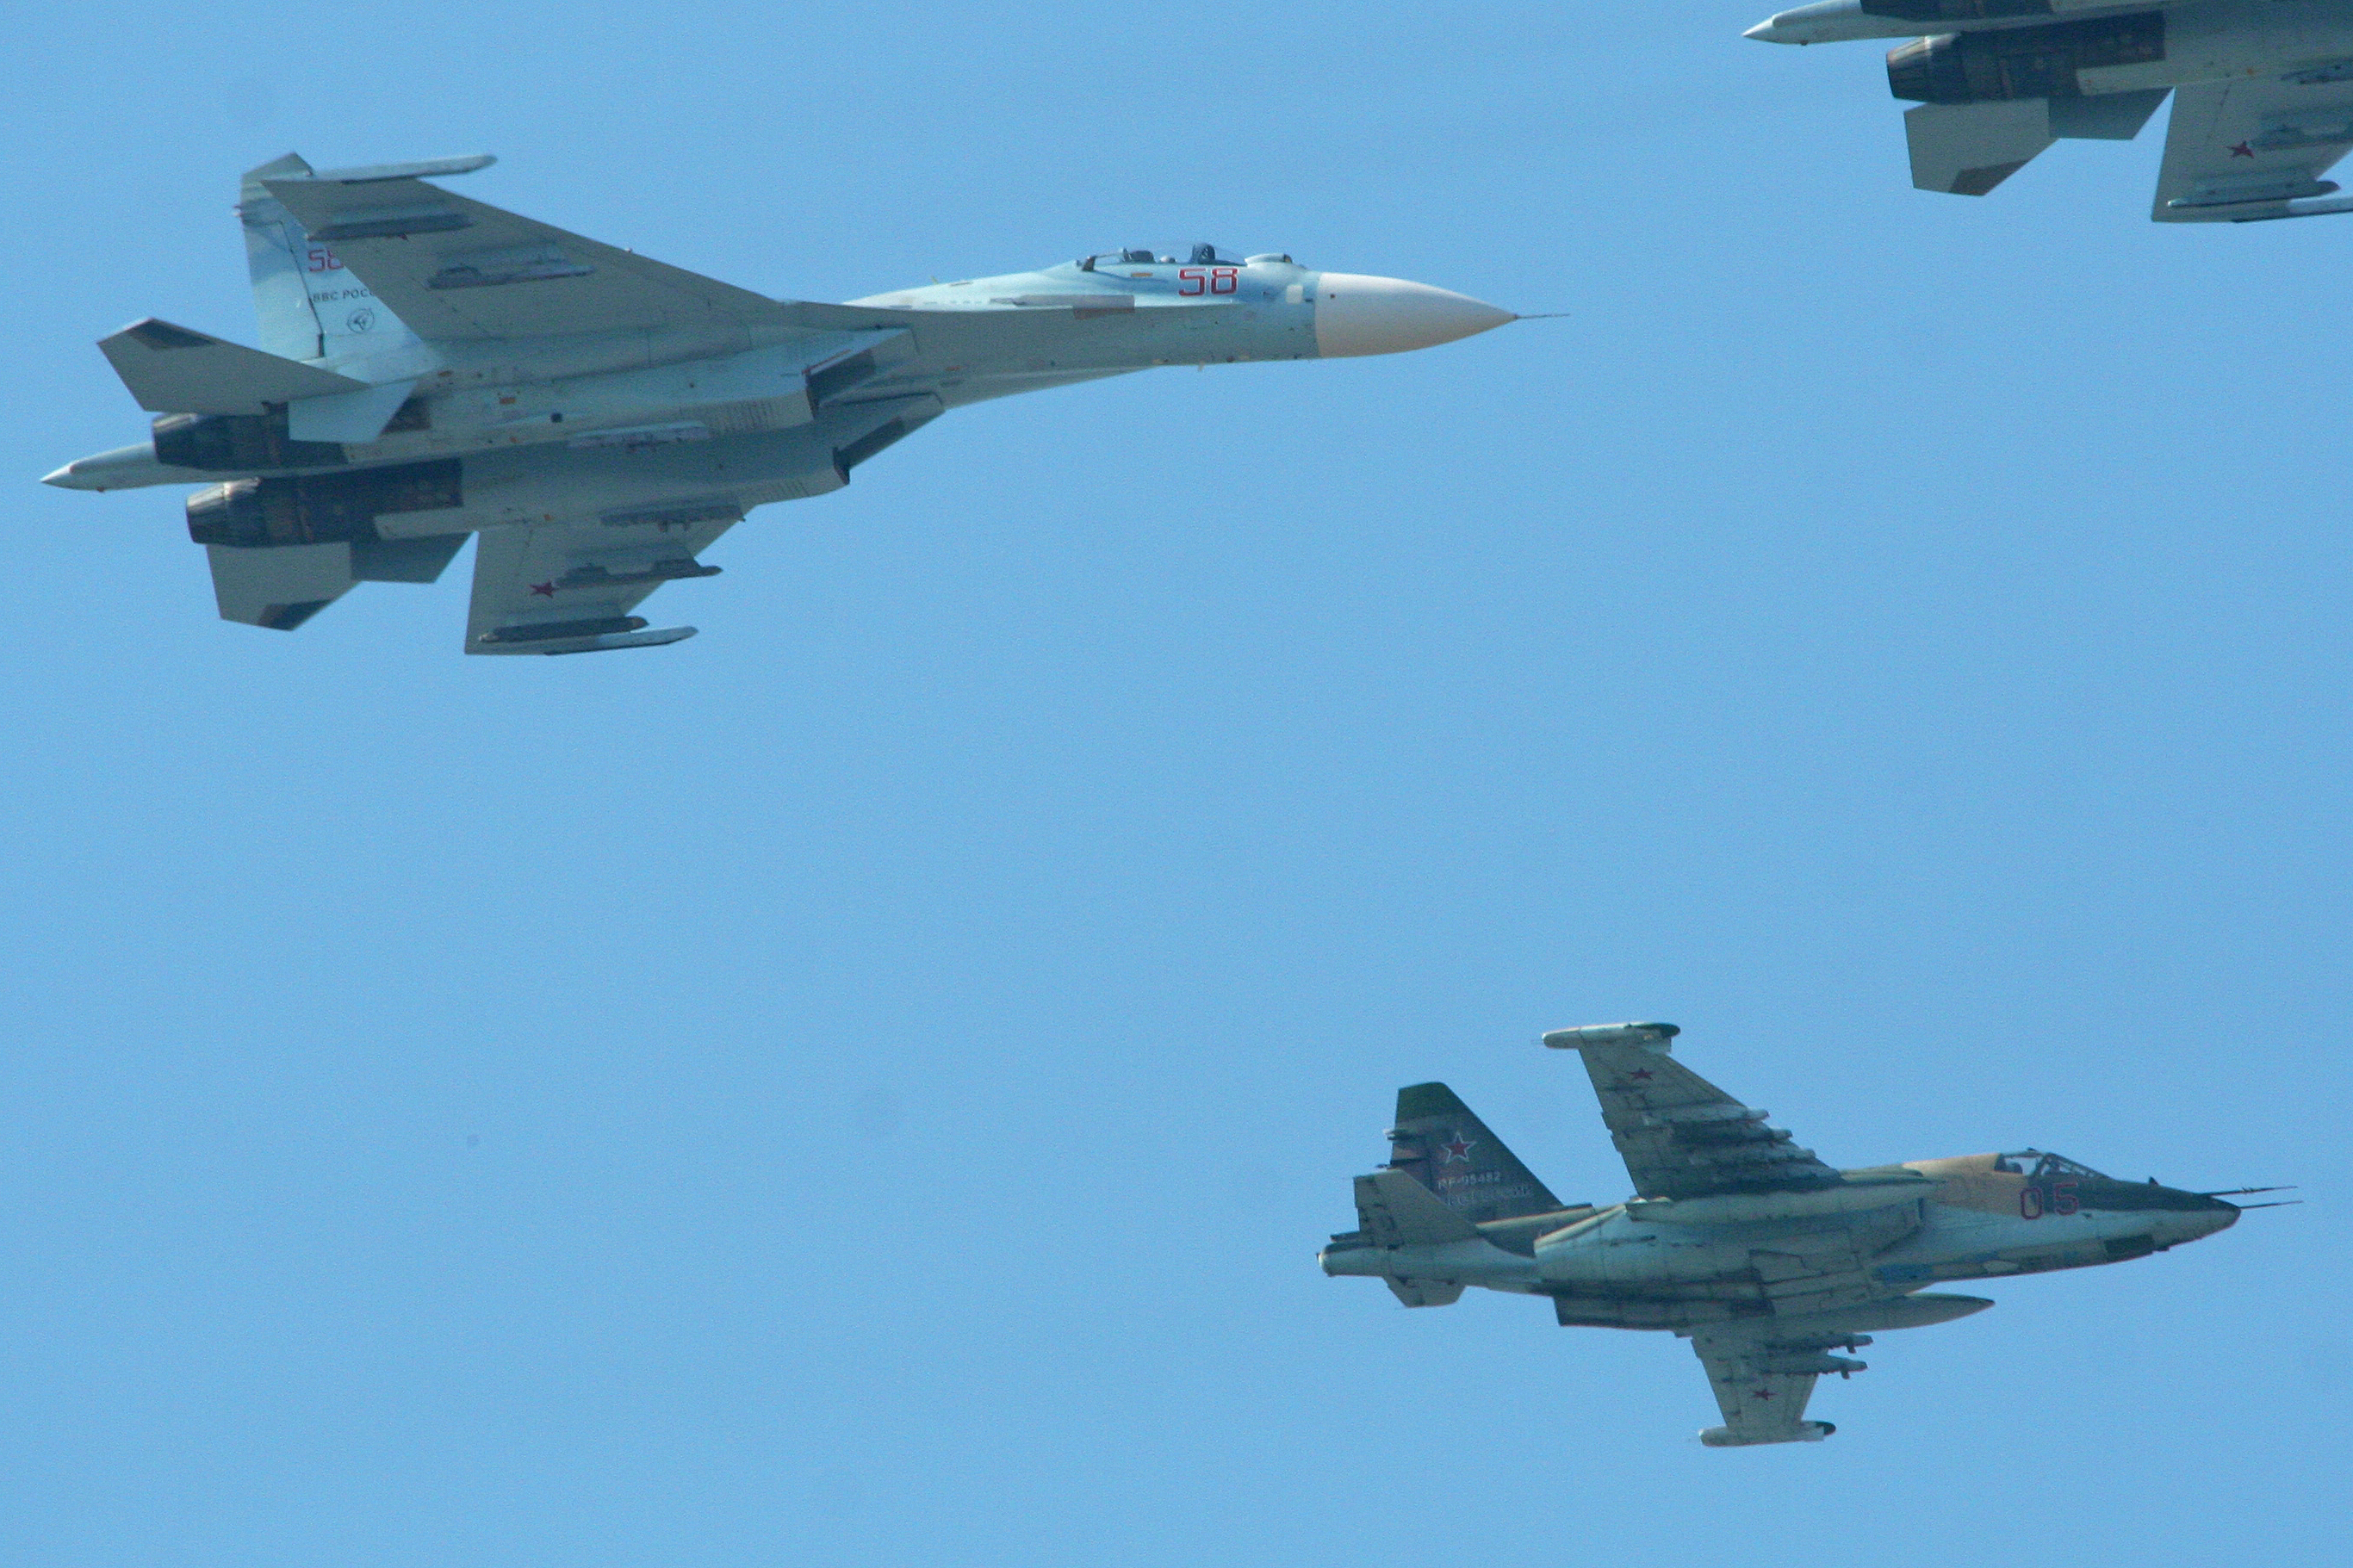 http://upload.wikimedia.org/wikipedia/commons/f/ff/Su-27_Flanker_58_red_%26_Su-25_Frogfoot_05_red_(8623310982).jpg